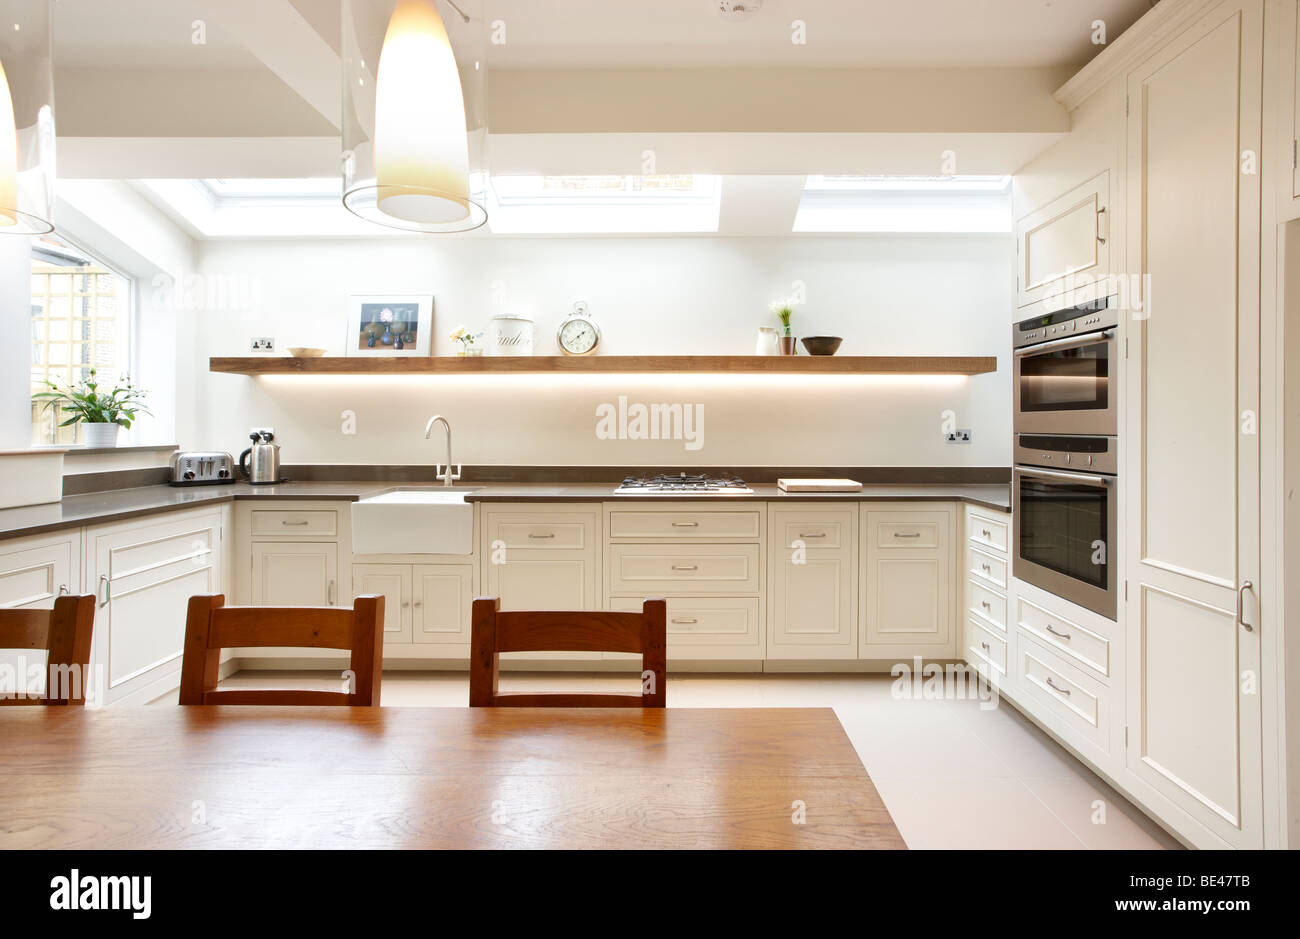 Kitchen Extensions With Velux Windows Velux Stock Photos Velux Stock Images Alamy